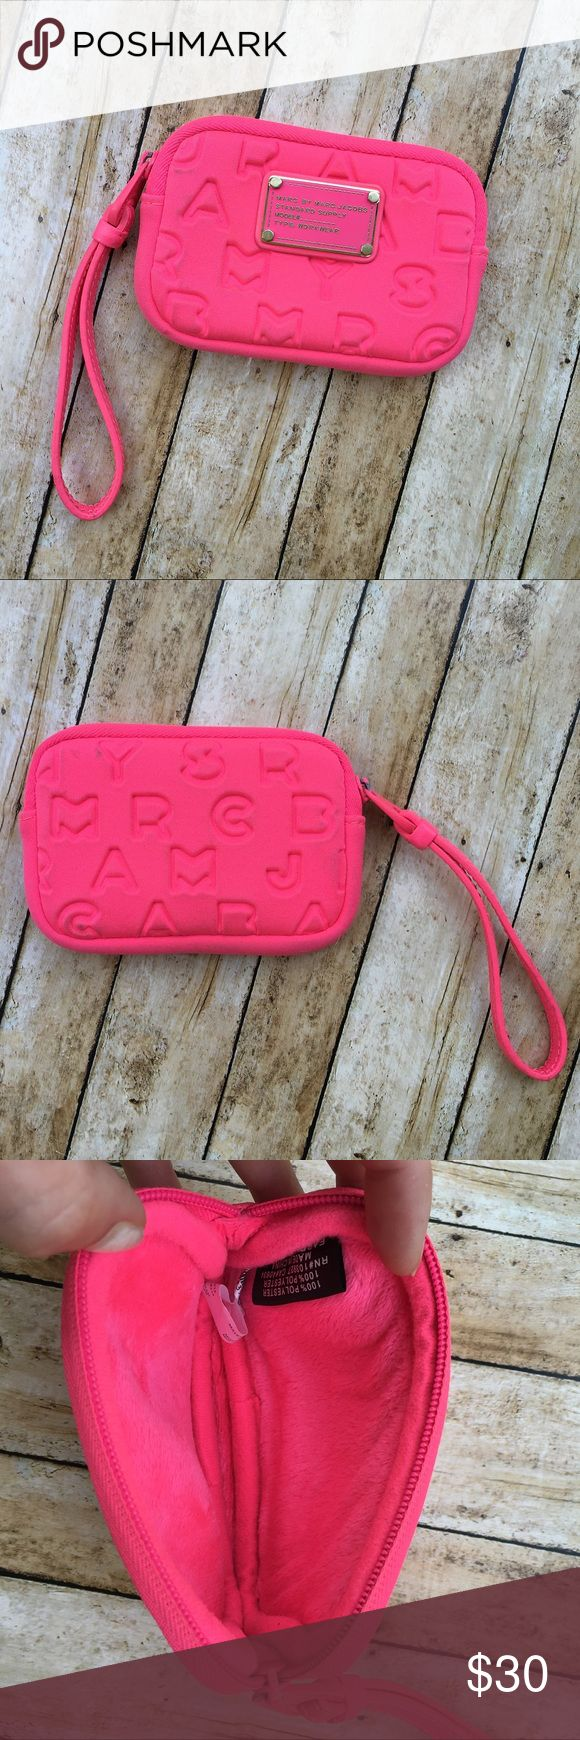 Marc by Marc Jacobs Wristlet Marc by Marc Jacobs Neoprene Wristlet. Cushioned to carry phone or can be used to carry credit cards and money. Minor wear consistent with use. Marc by Marc Jacobs Bags Clutches & Wristlets